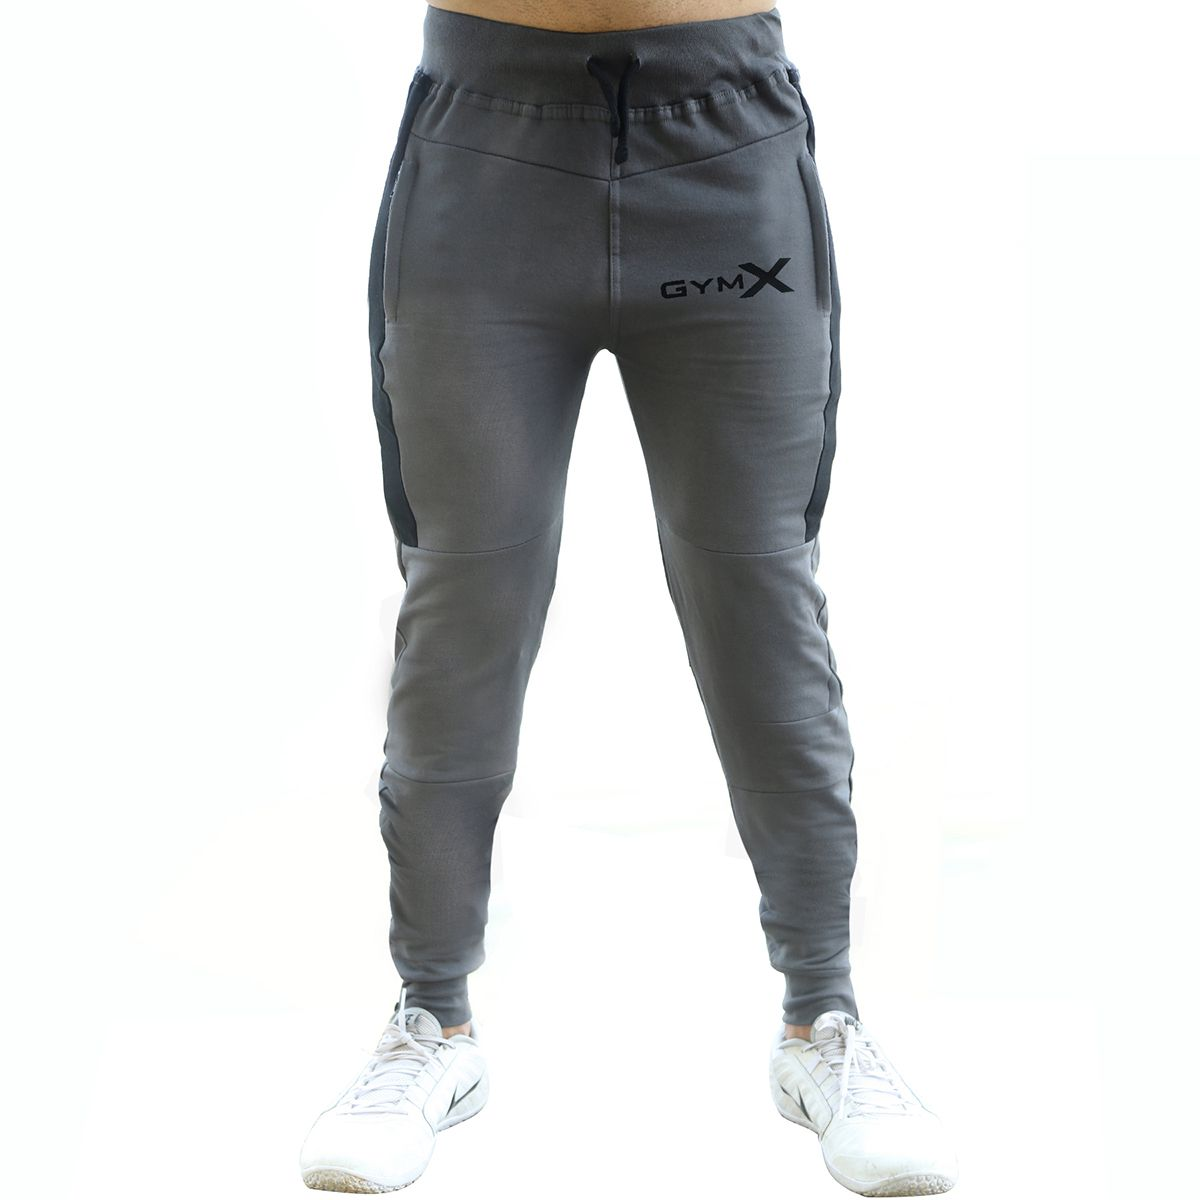 GymX Mens Outperform Carbon Grey Sweatpants